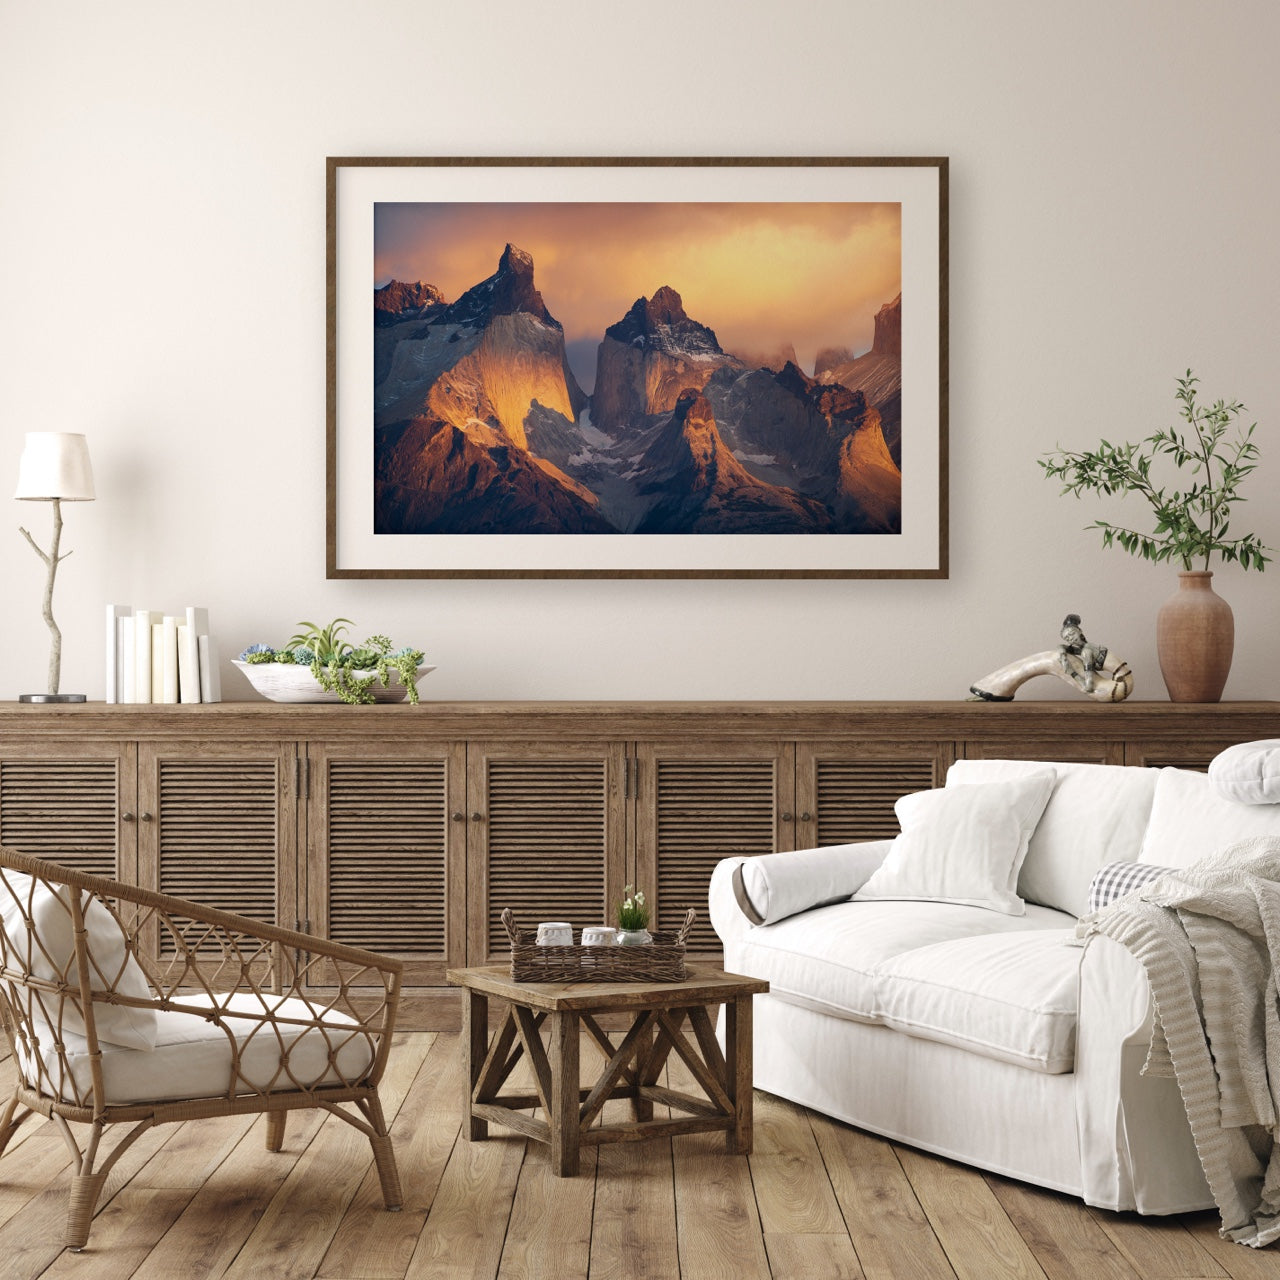 Framed mountain art in living room